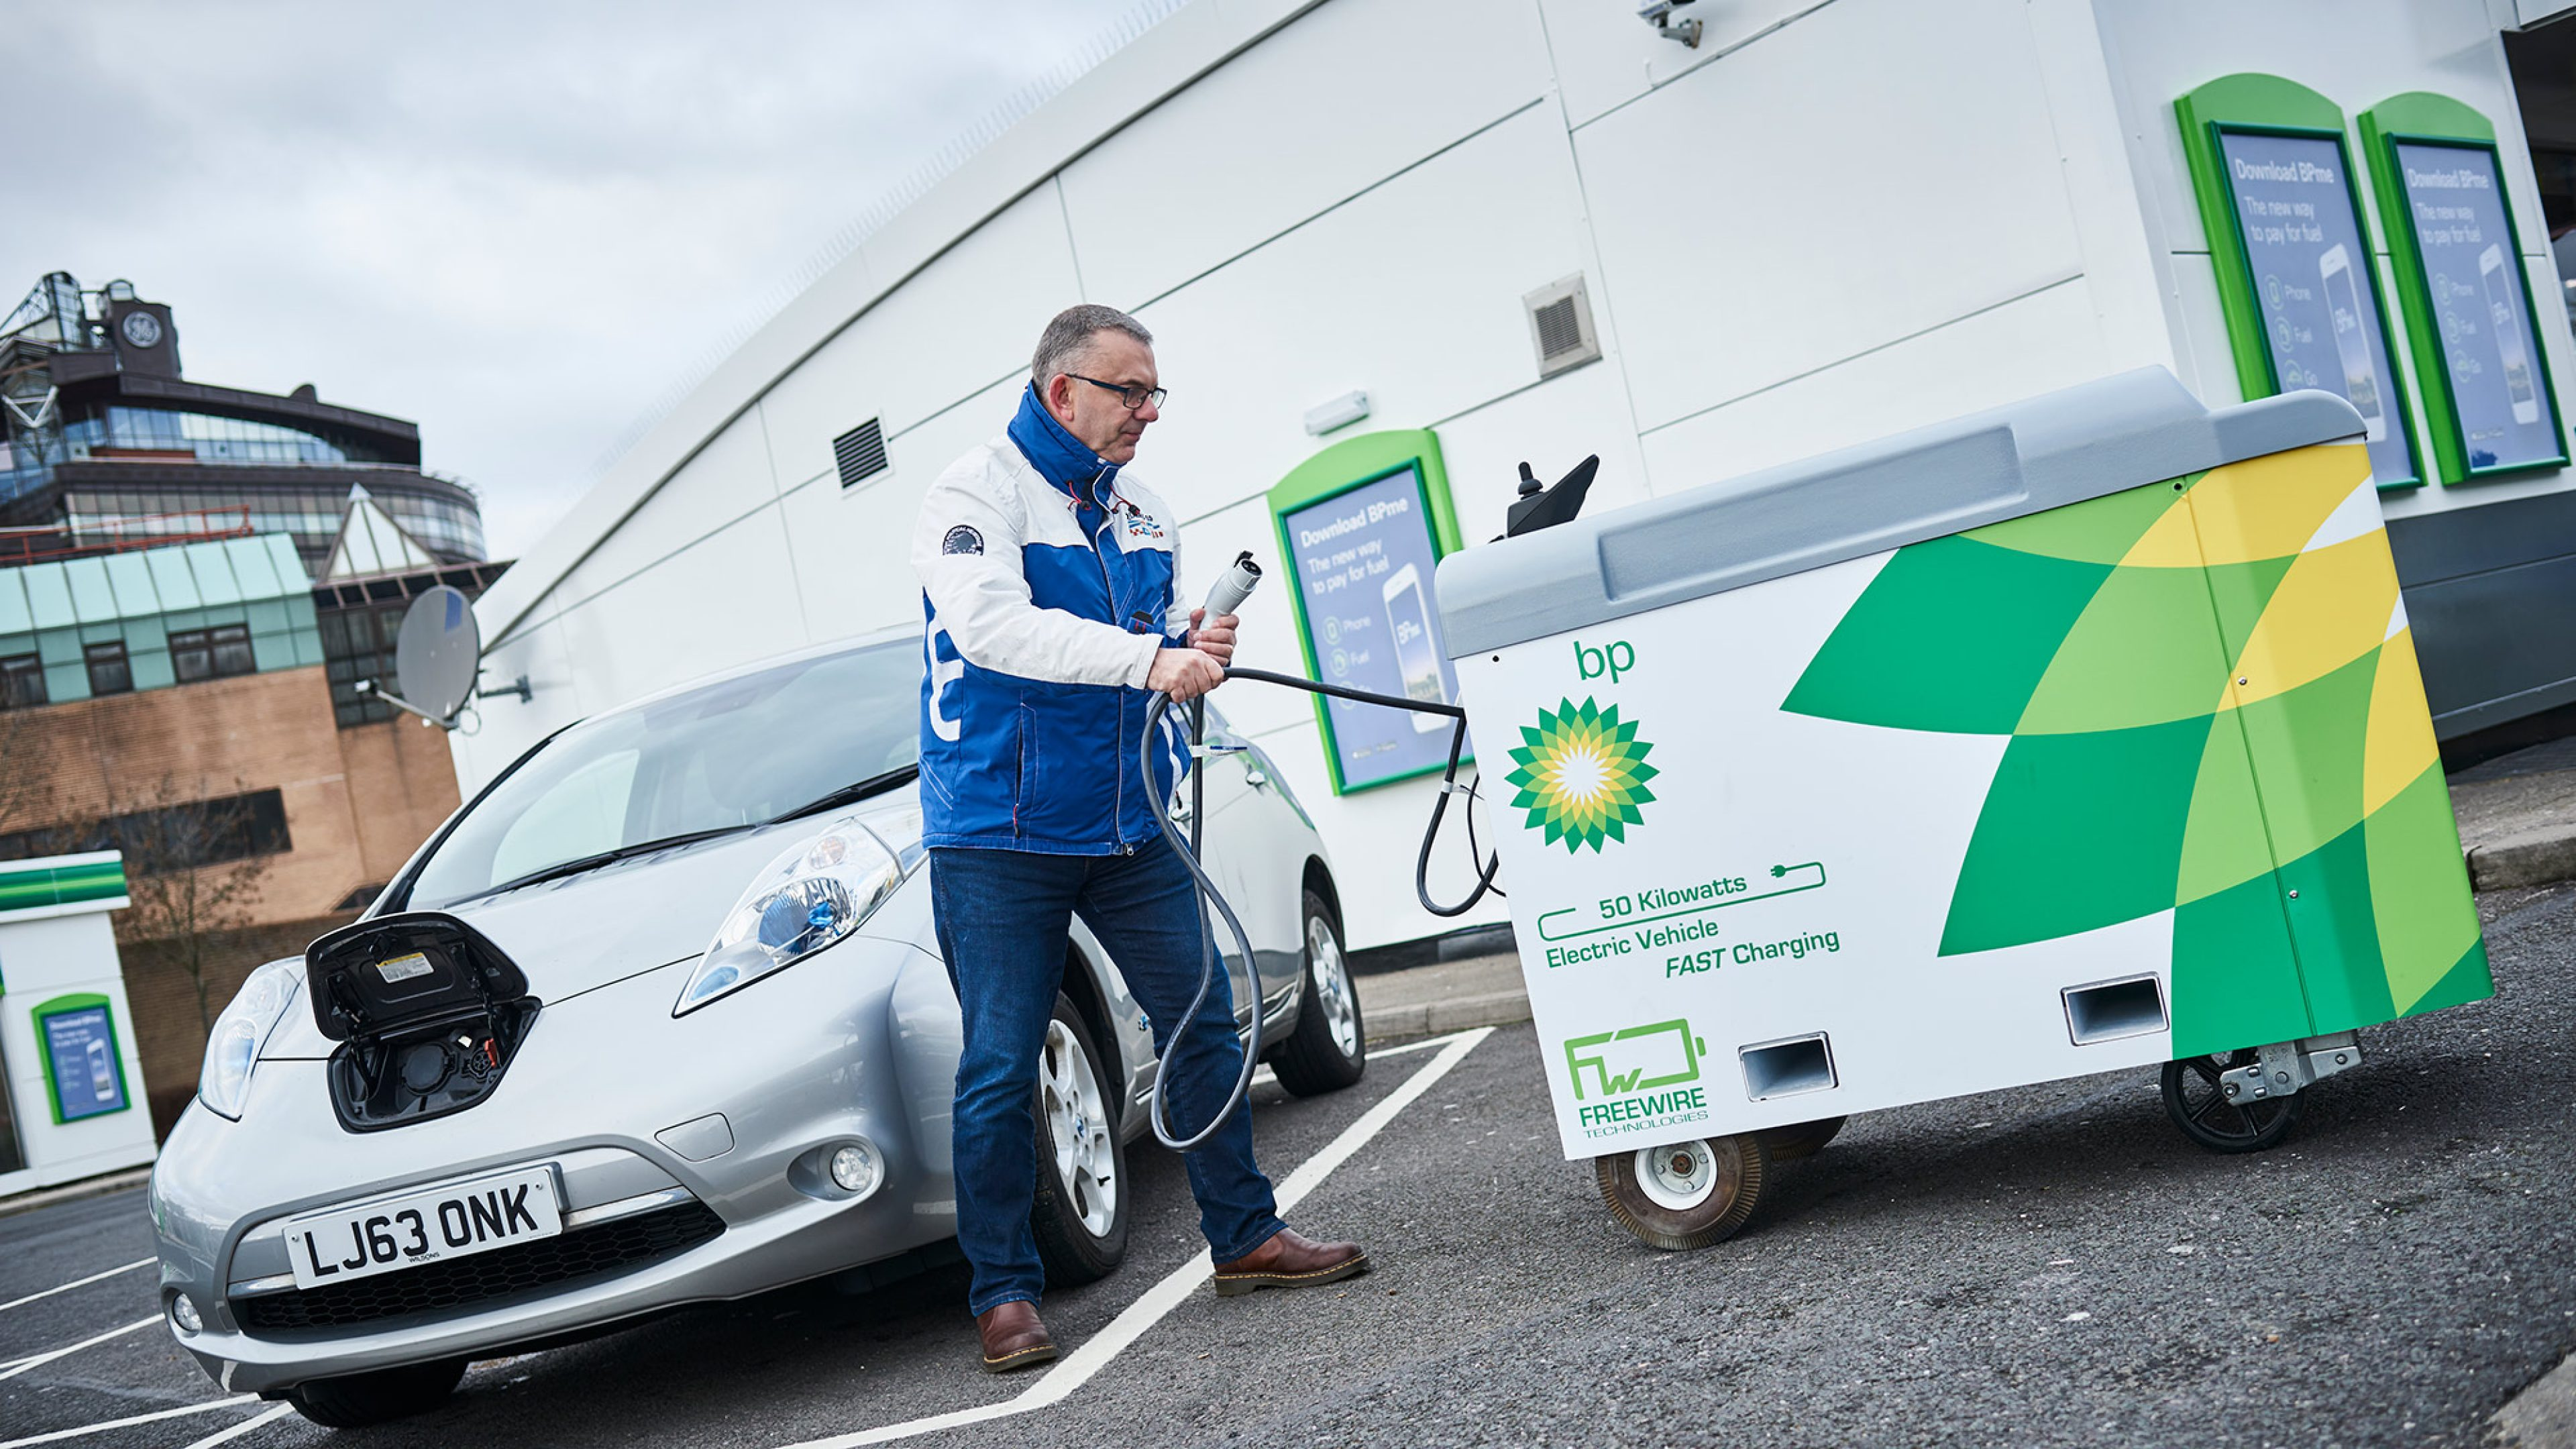 FreeWire mobile electric vehicle charging on a BP forecourt in London, UK